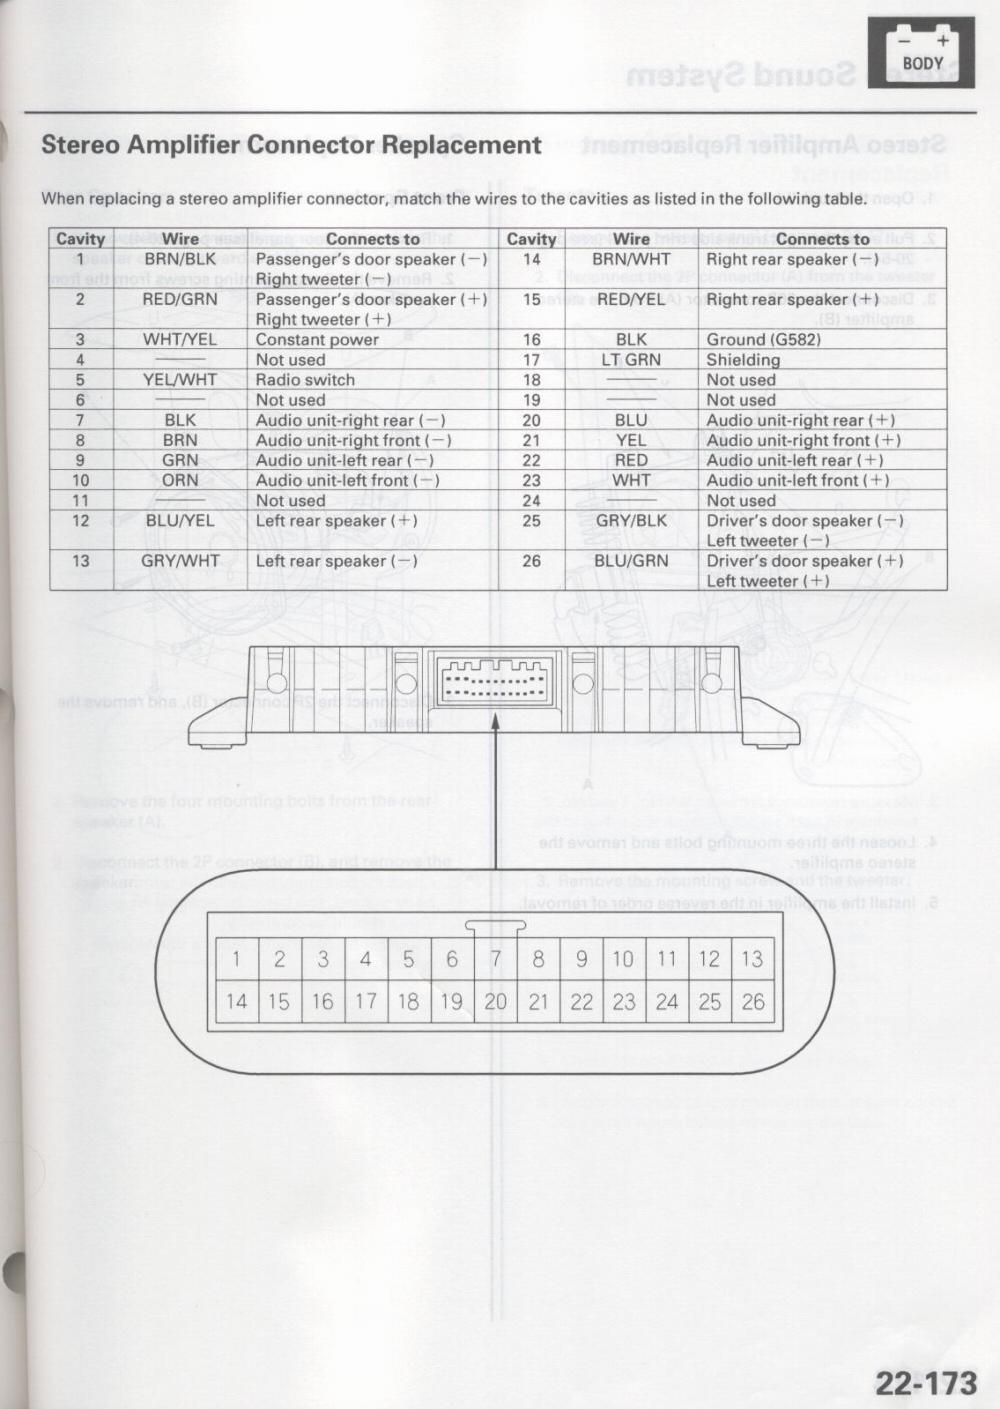 Acura 2002 TL car stereo amplifier wiring diagram harness car radio stereo audio wiring diagram autoradio connector wire suzuki swift 2007 stereo wiring diagram at crackthecode.co